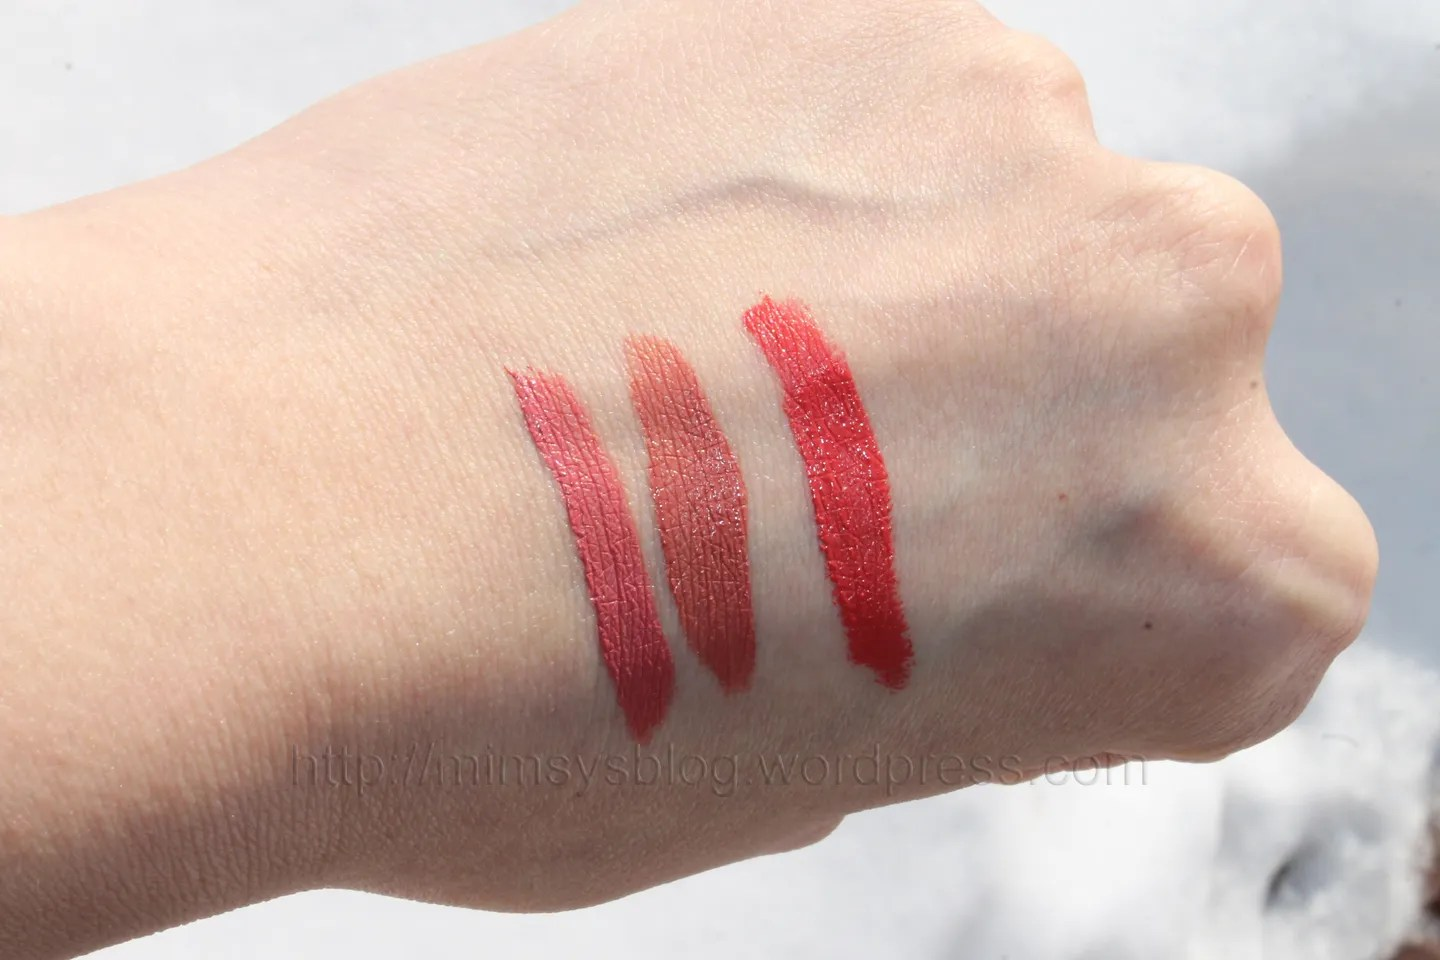 The Healthy Lip Velvet Liquid Lipstick by Physicians Formula #13